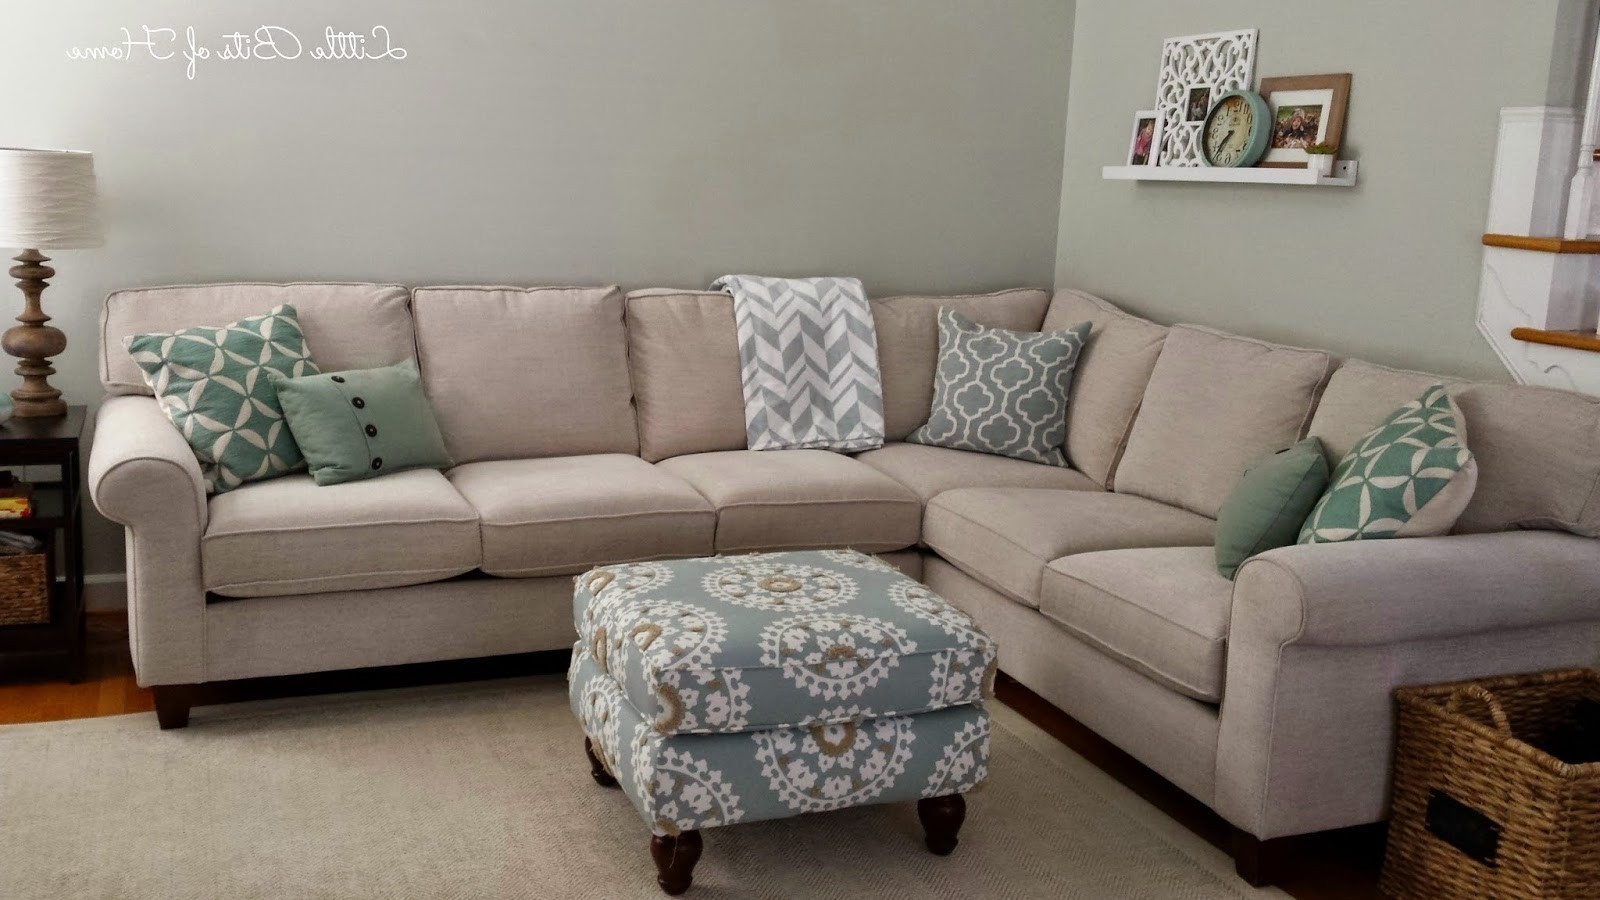 Widely Used Havertys Sectional Sofas Regarding Lovely Haverty Sectional Sofa – Buildsimplehome (View 20 of 20)